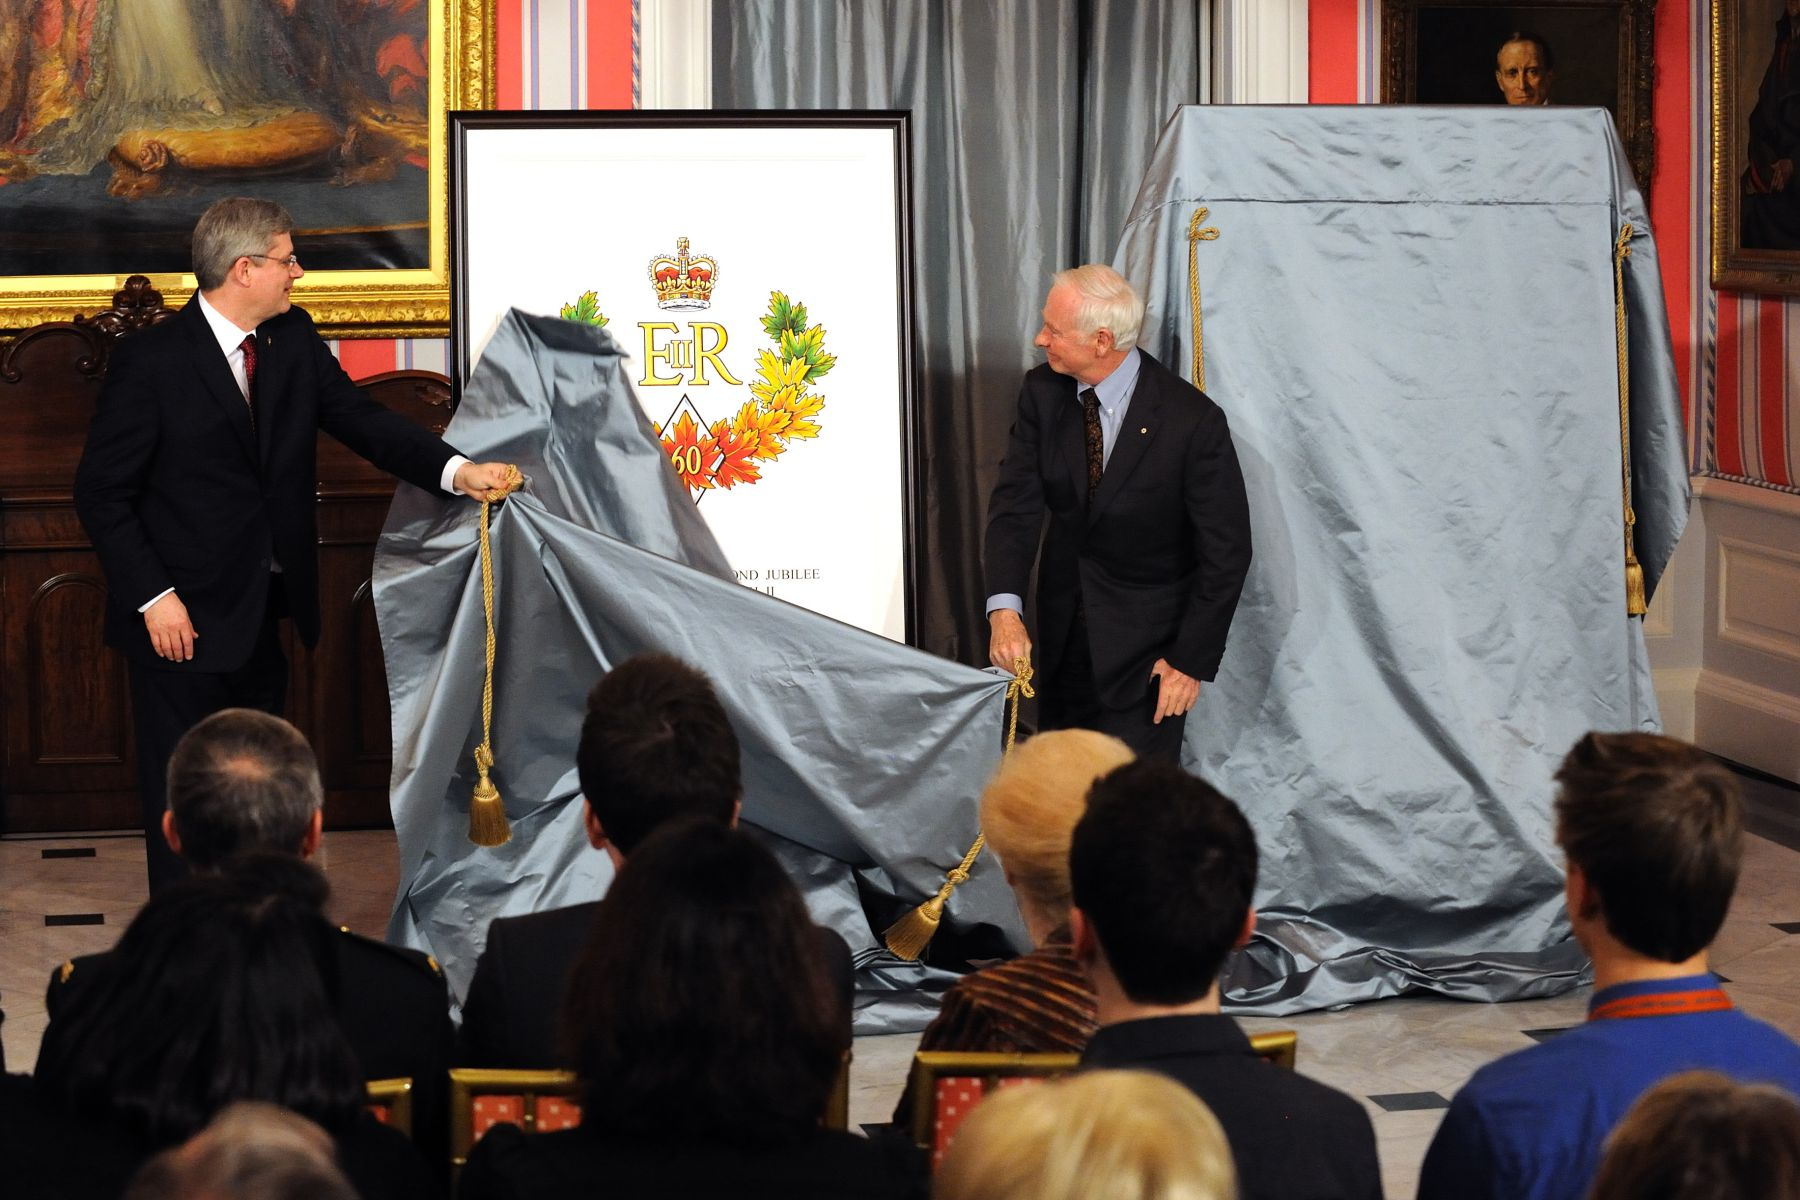 His Excellency was joined by the Right Honourable Stephen Harper, Prime Minister of Canada, who unveiled the official emblem for the Diamond Jubilee year and invited Canadians to prepare to mark this important anniversary in 2012.